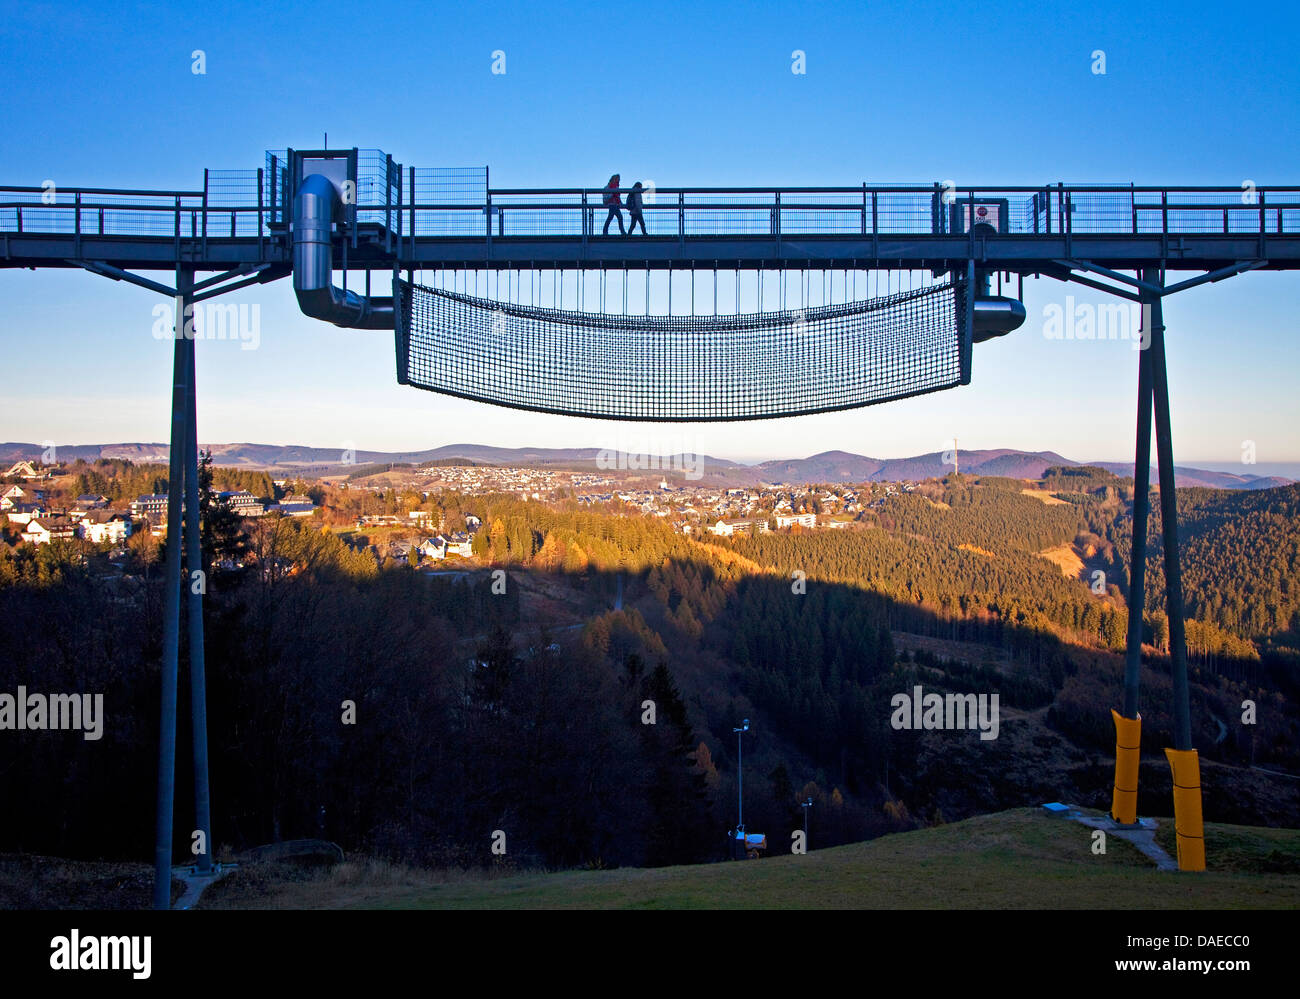 Panorama-Erlebnis-Bruecke with the Dschungelbruecke hanging below, Germany, North Rhine-Westphalia, Sauerland, Winterberg - Stock Image